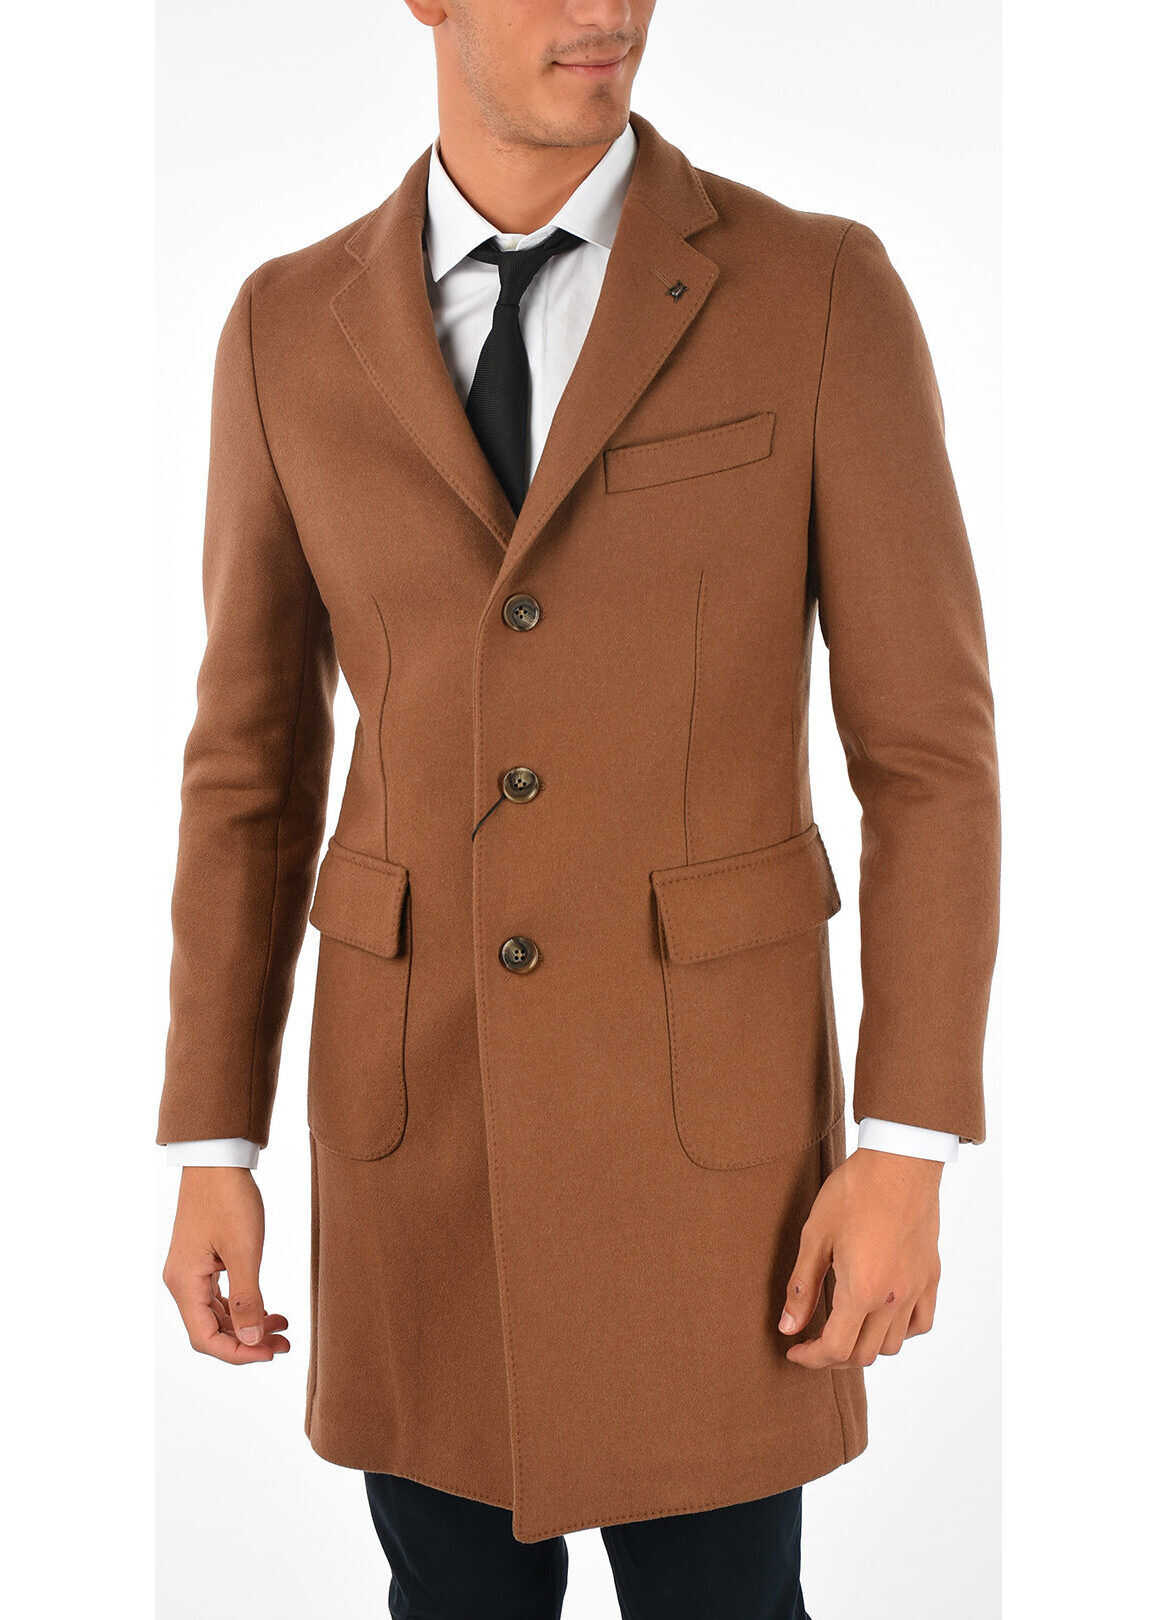 CORNELIANI CC COLLECTION Single Breasted 2 Button Coat BROWN